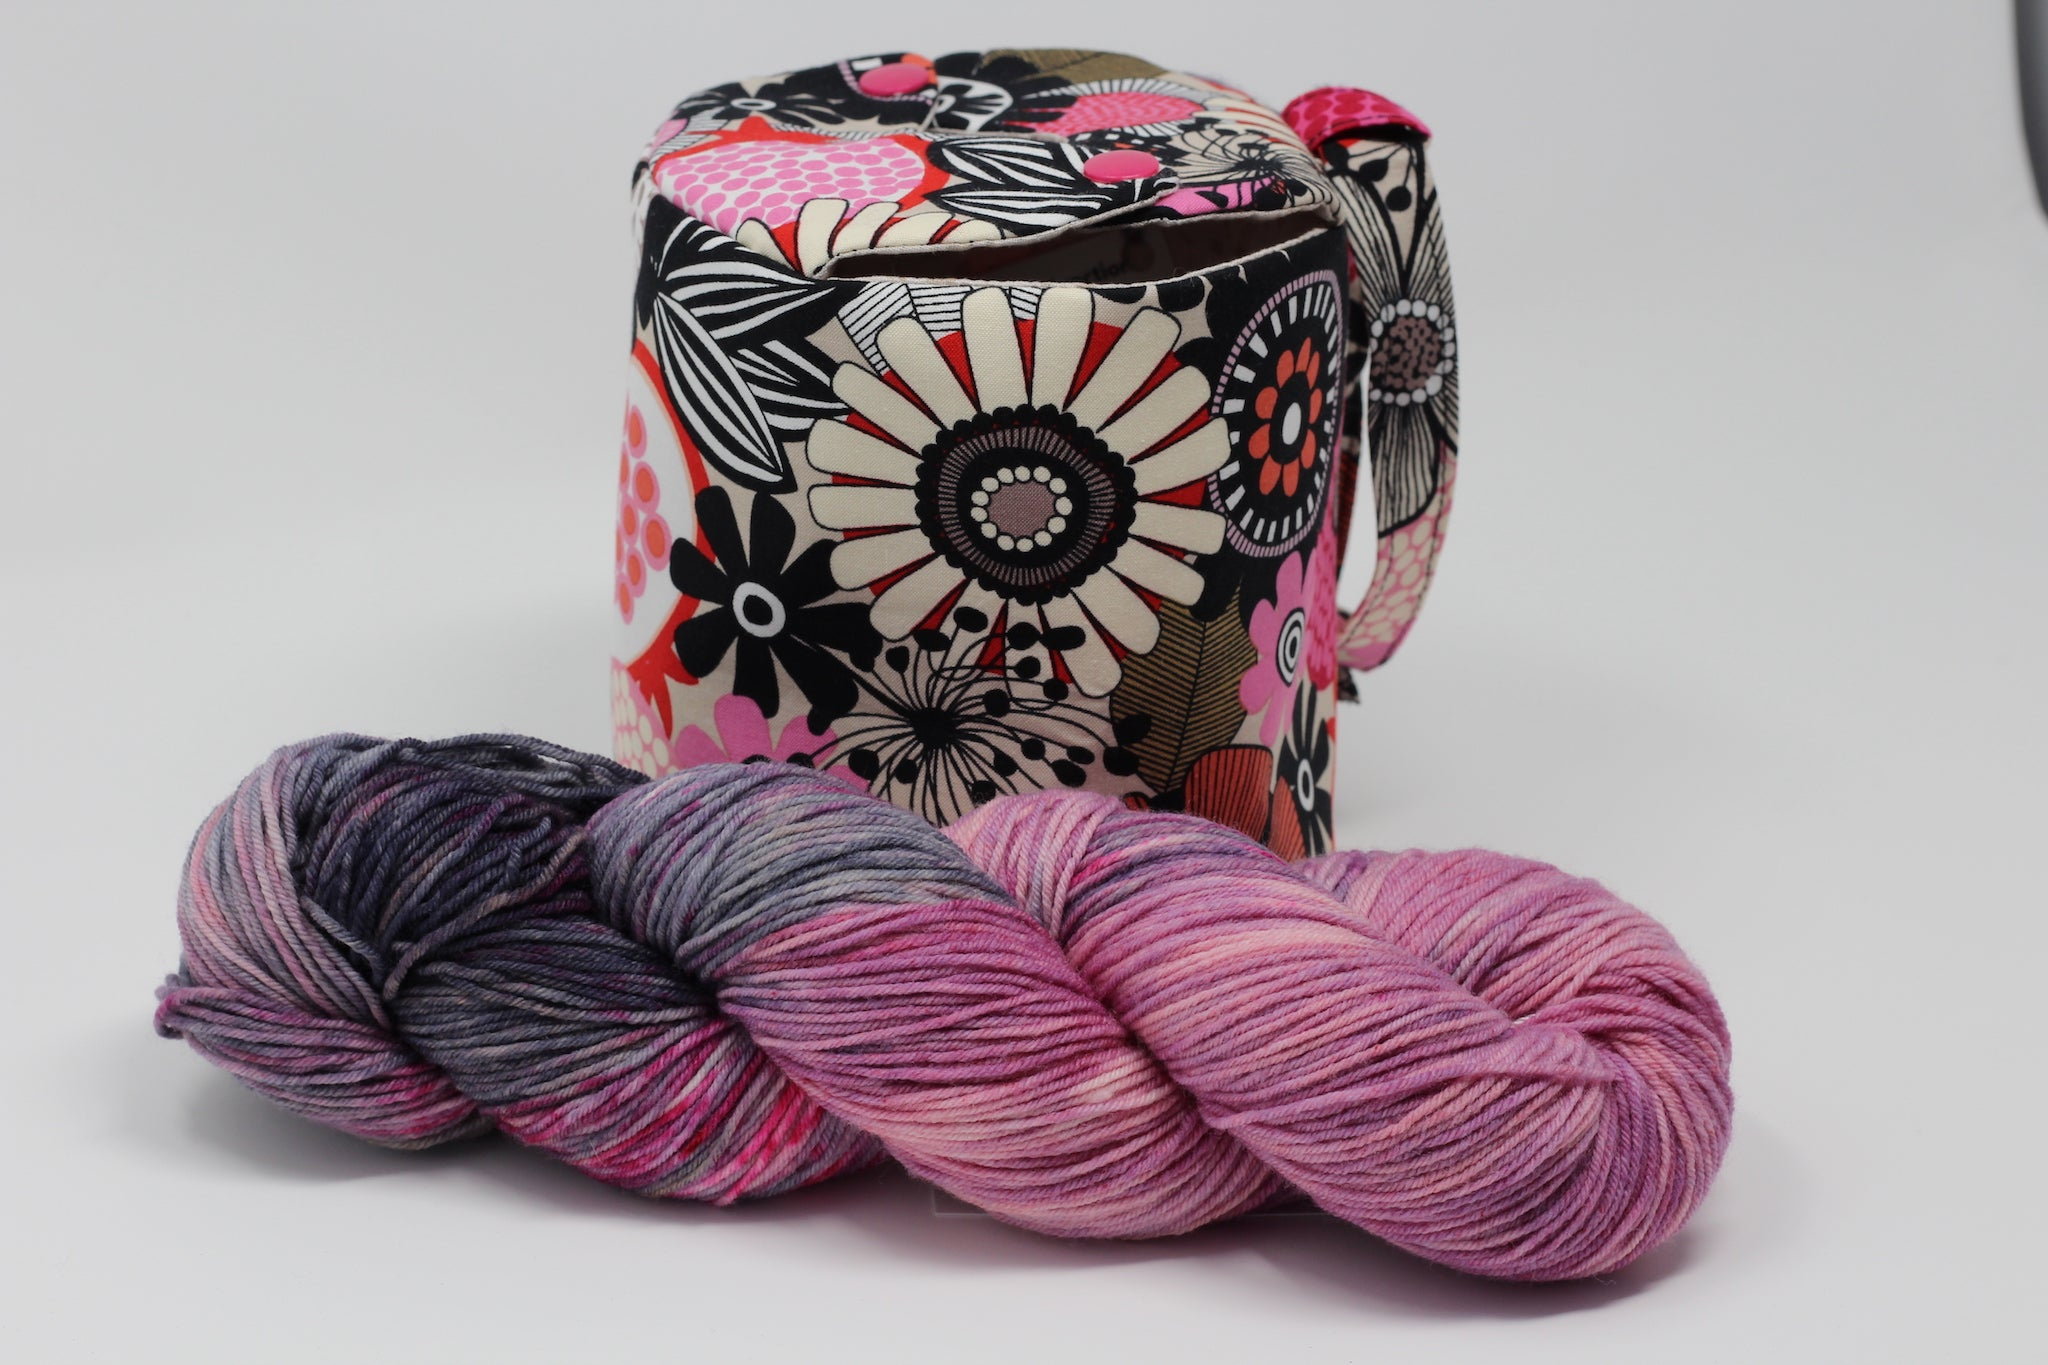 Pomegranate Sock Project Bag with Yarn